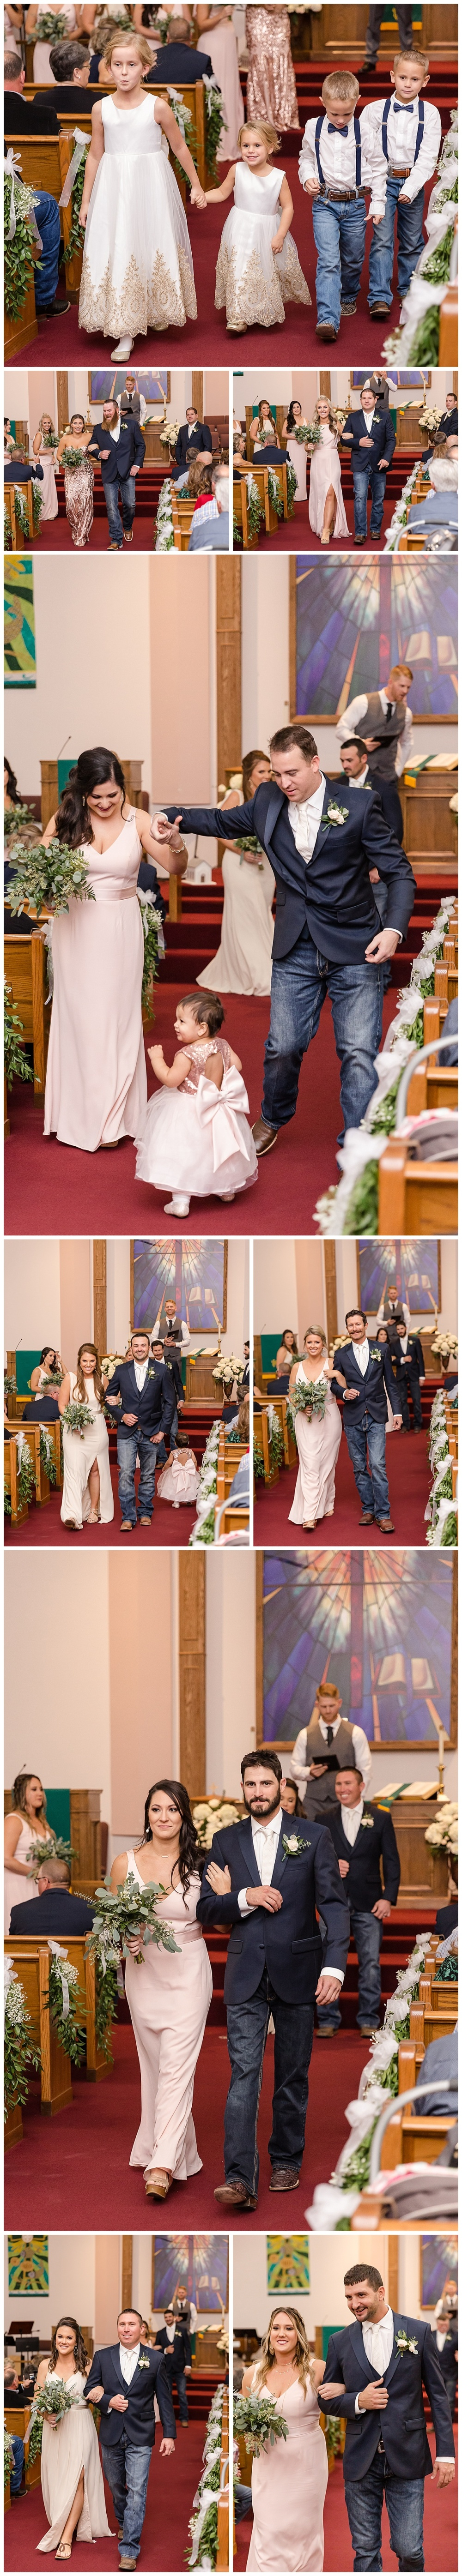 South-Texas-Wedding-Photographer-Rose-Gold-and-Navy-Theme-LaVernia-Bride-Groom-Carly-Barton-Photography_0051